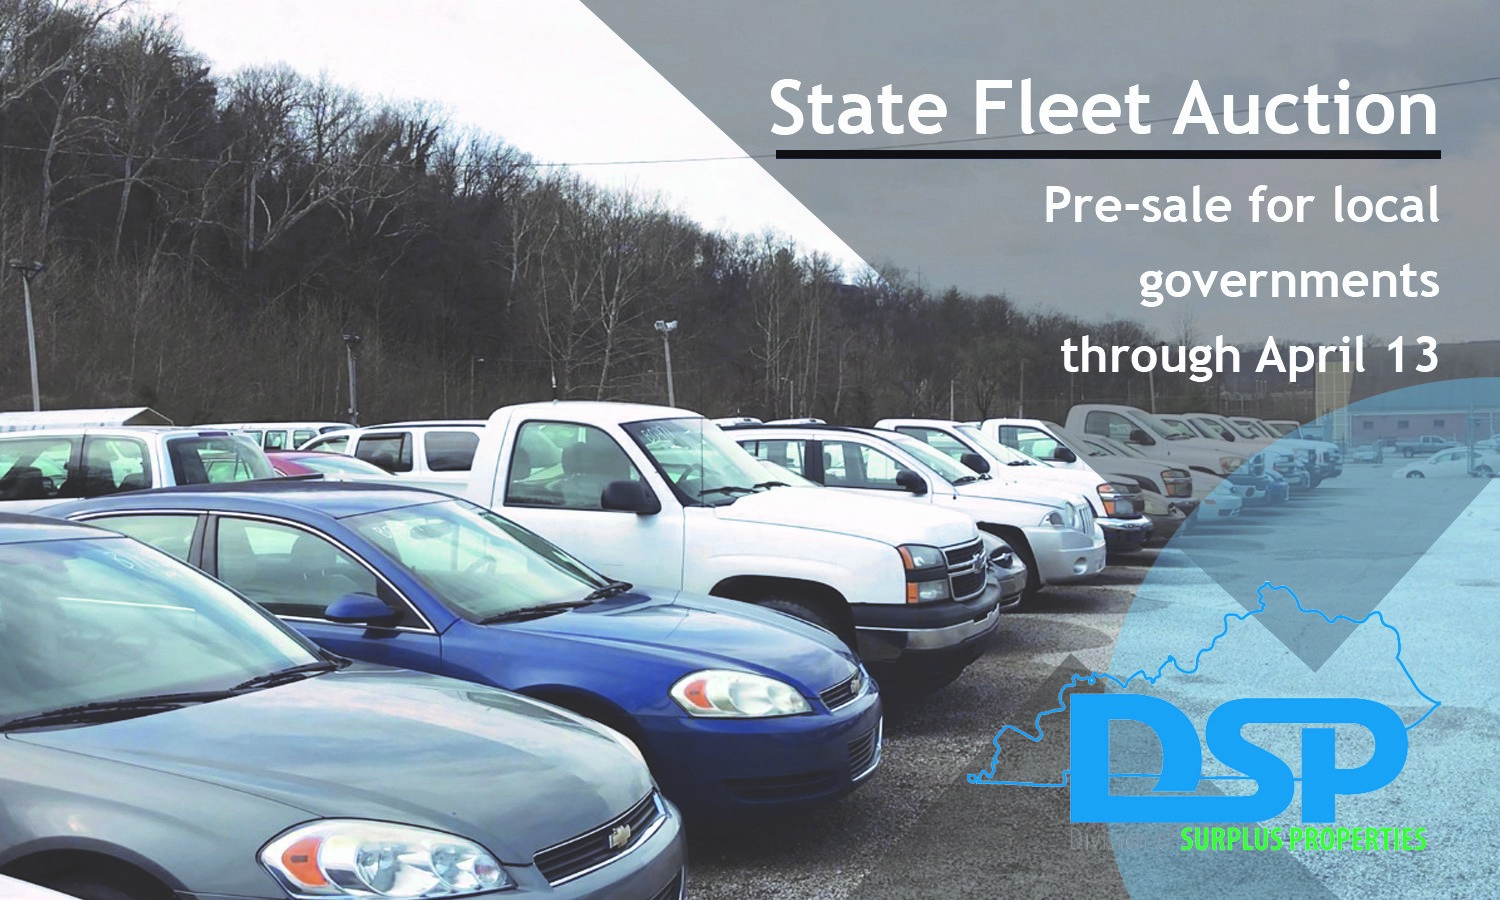 Local Governments Can Take Advantage of State Fleet Auction Before General Public